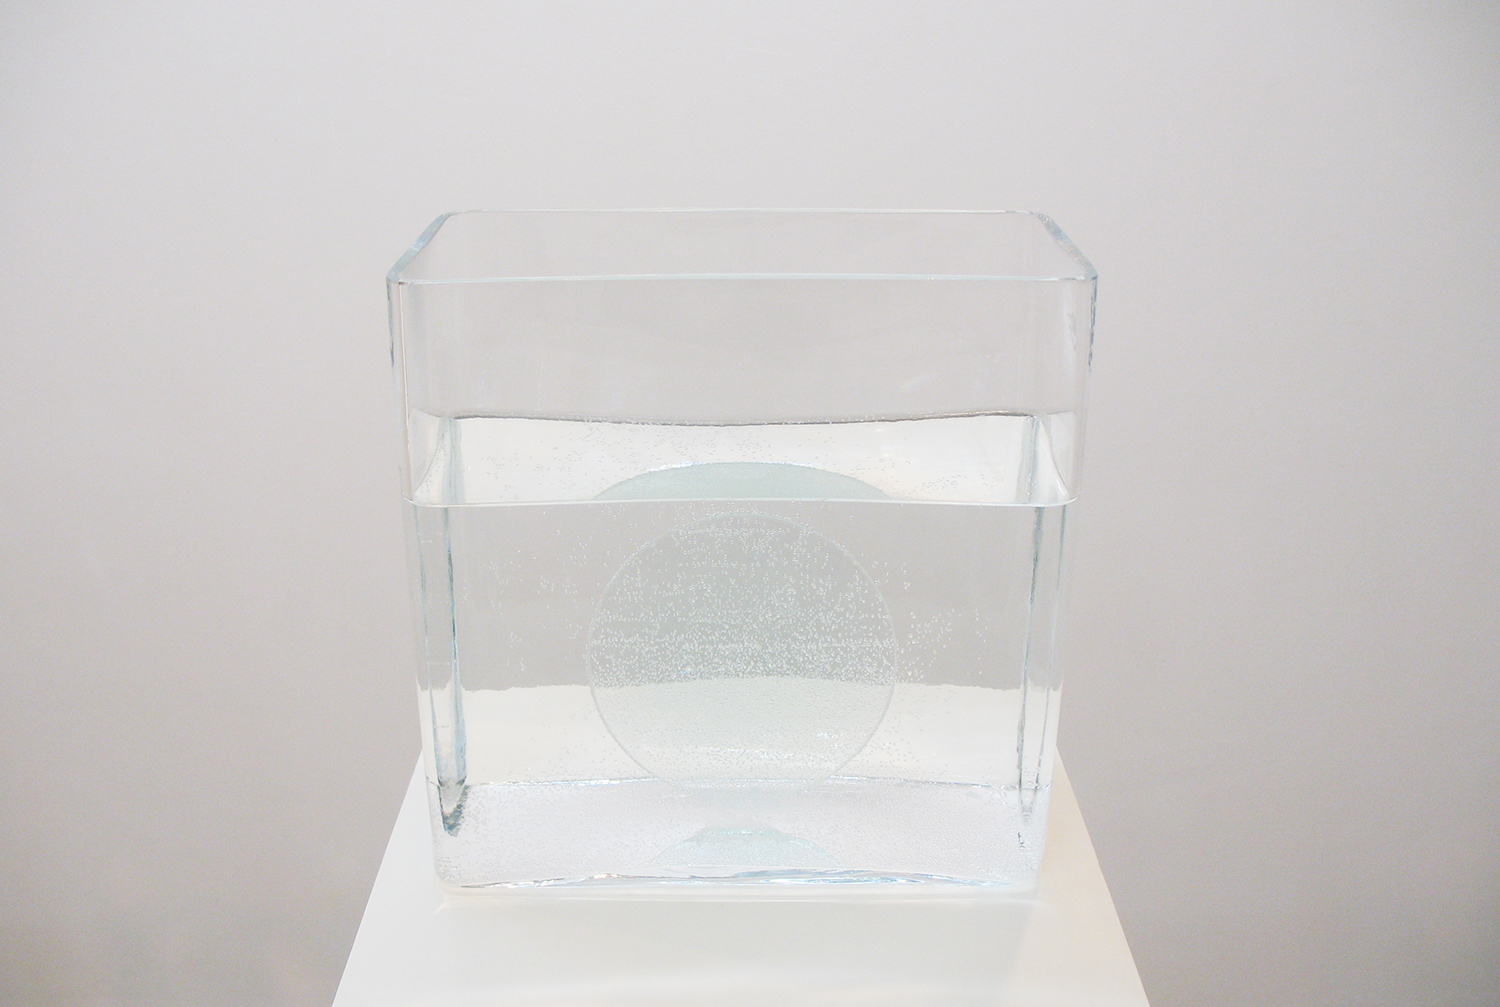 境界 3|border 3<br>water, glass, lens<br>245 x 245 x 120 mm pedestal: 300 x 300 x 1150 mm 2010